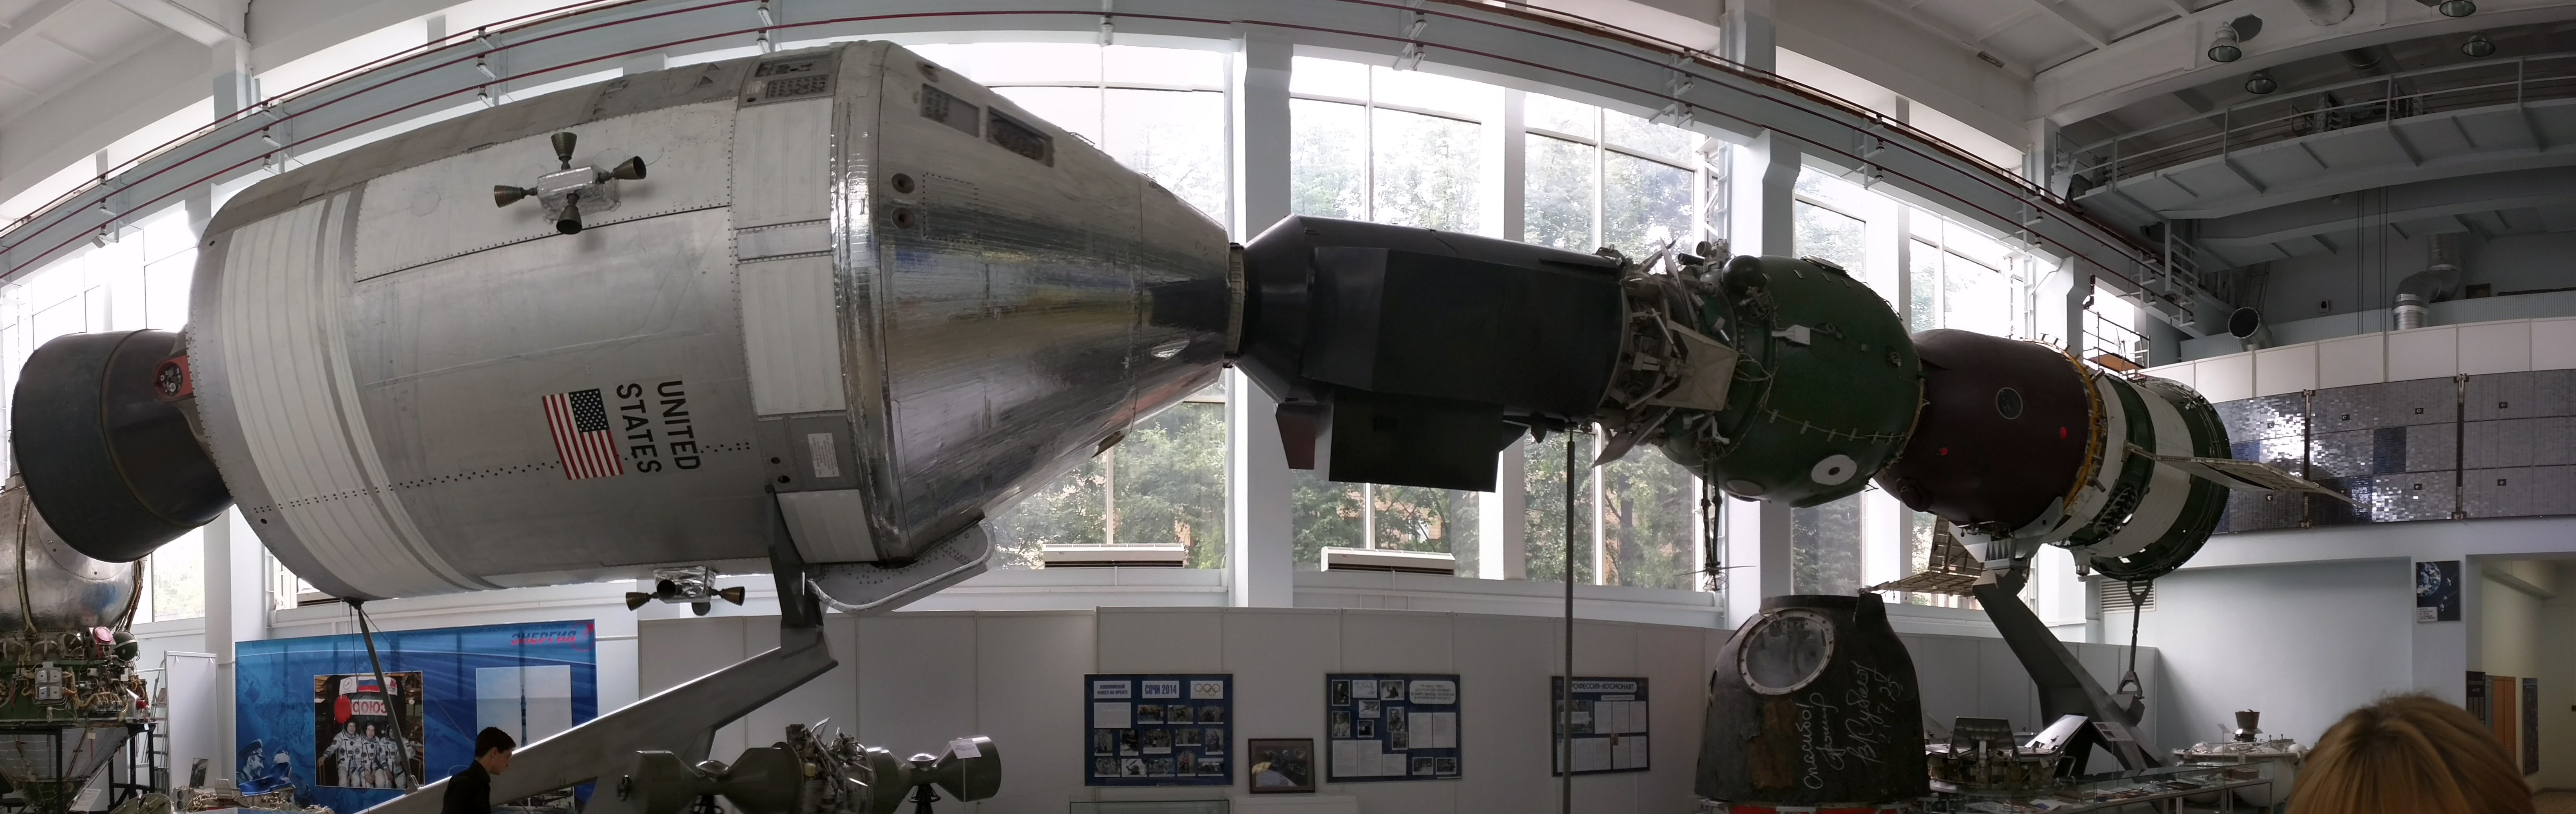 https://upload.wikimedia.org/wikipedia/commons/5/59/Apollo-Soyuz_display_at_the_RKK_Energia_Museum.jpg